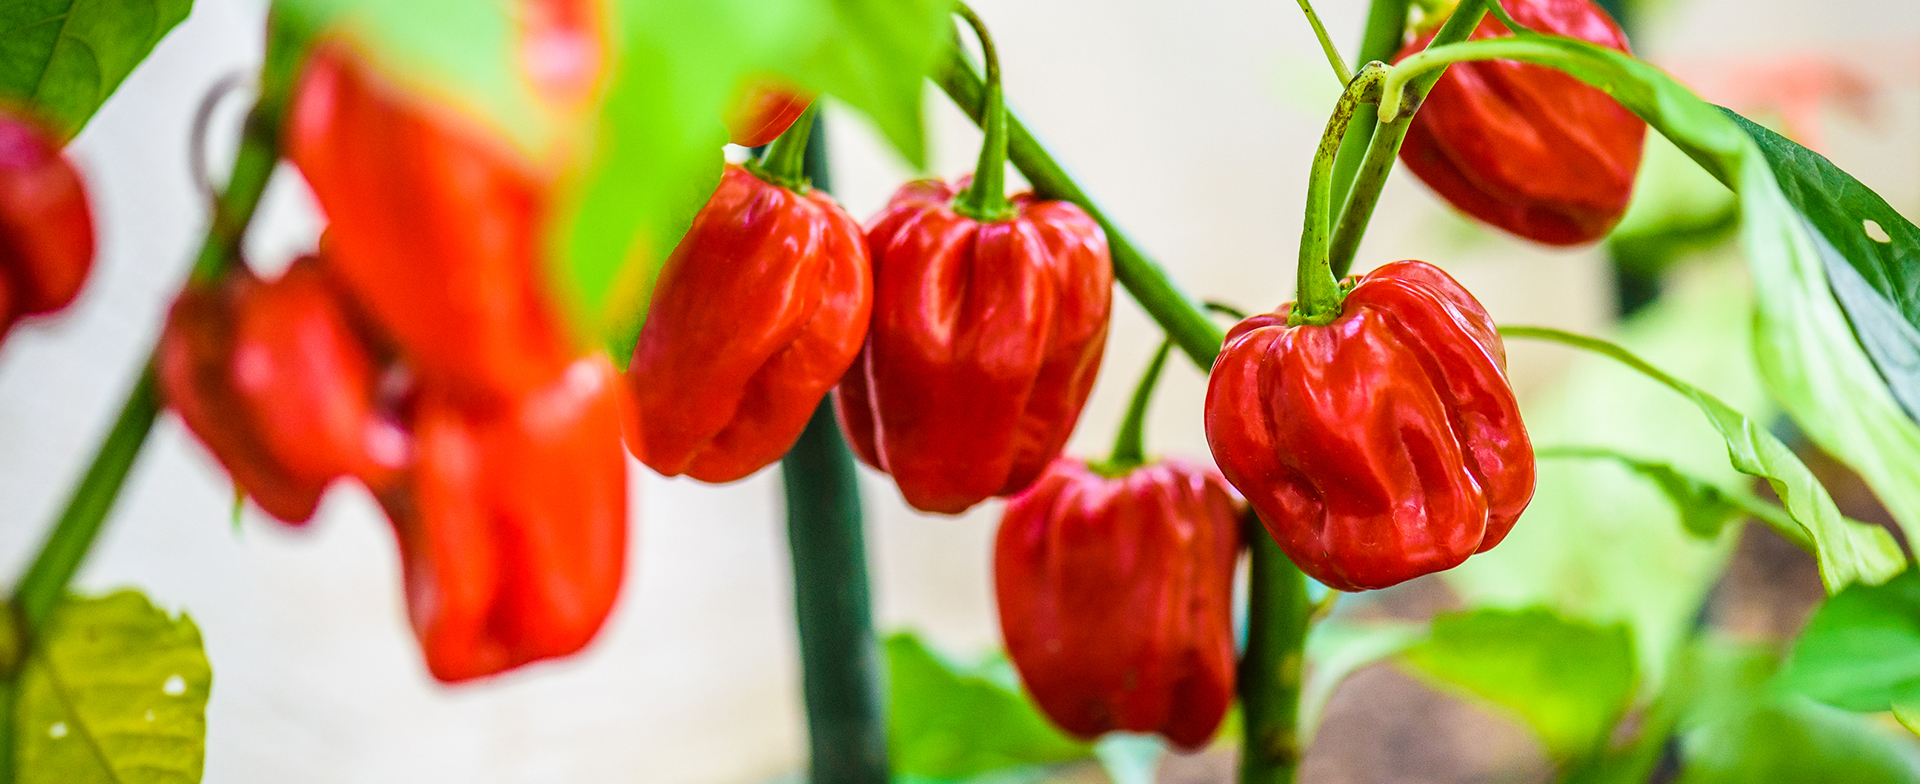 Habanero; The Spicy Superfood